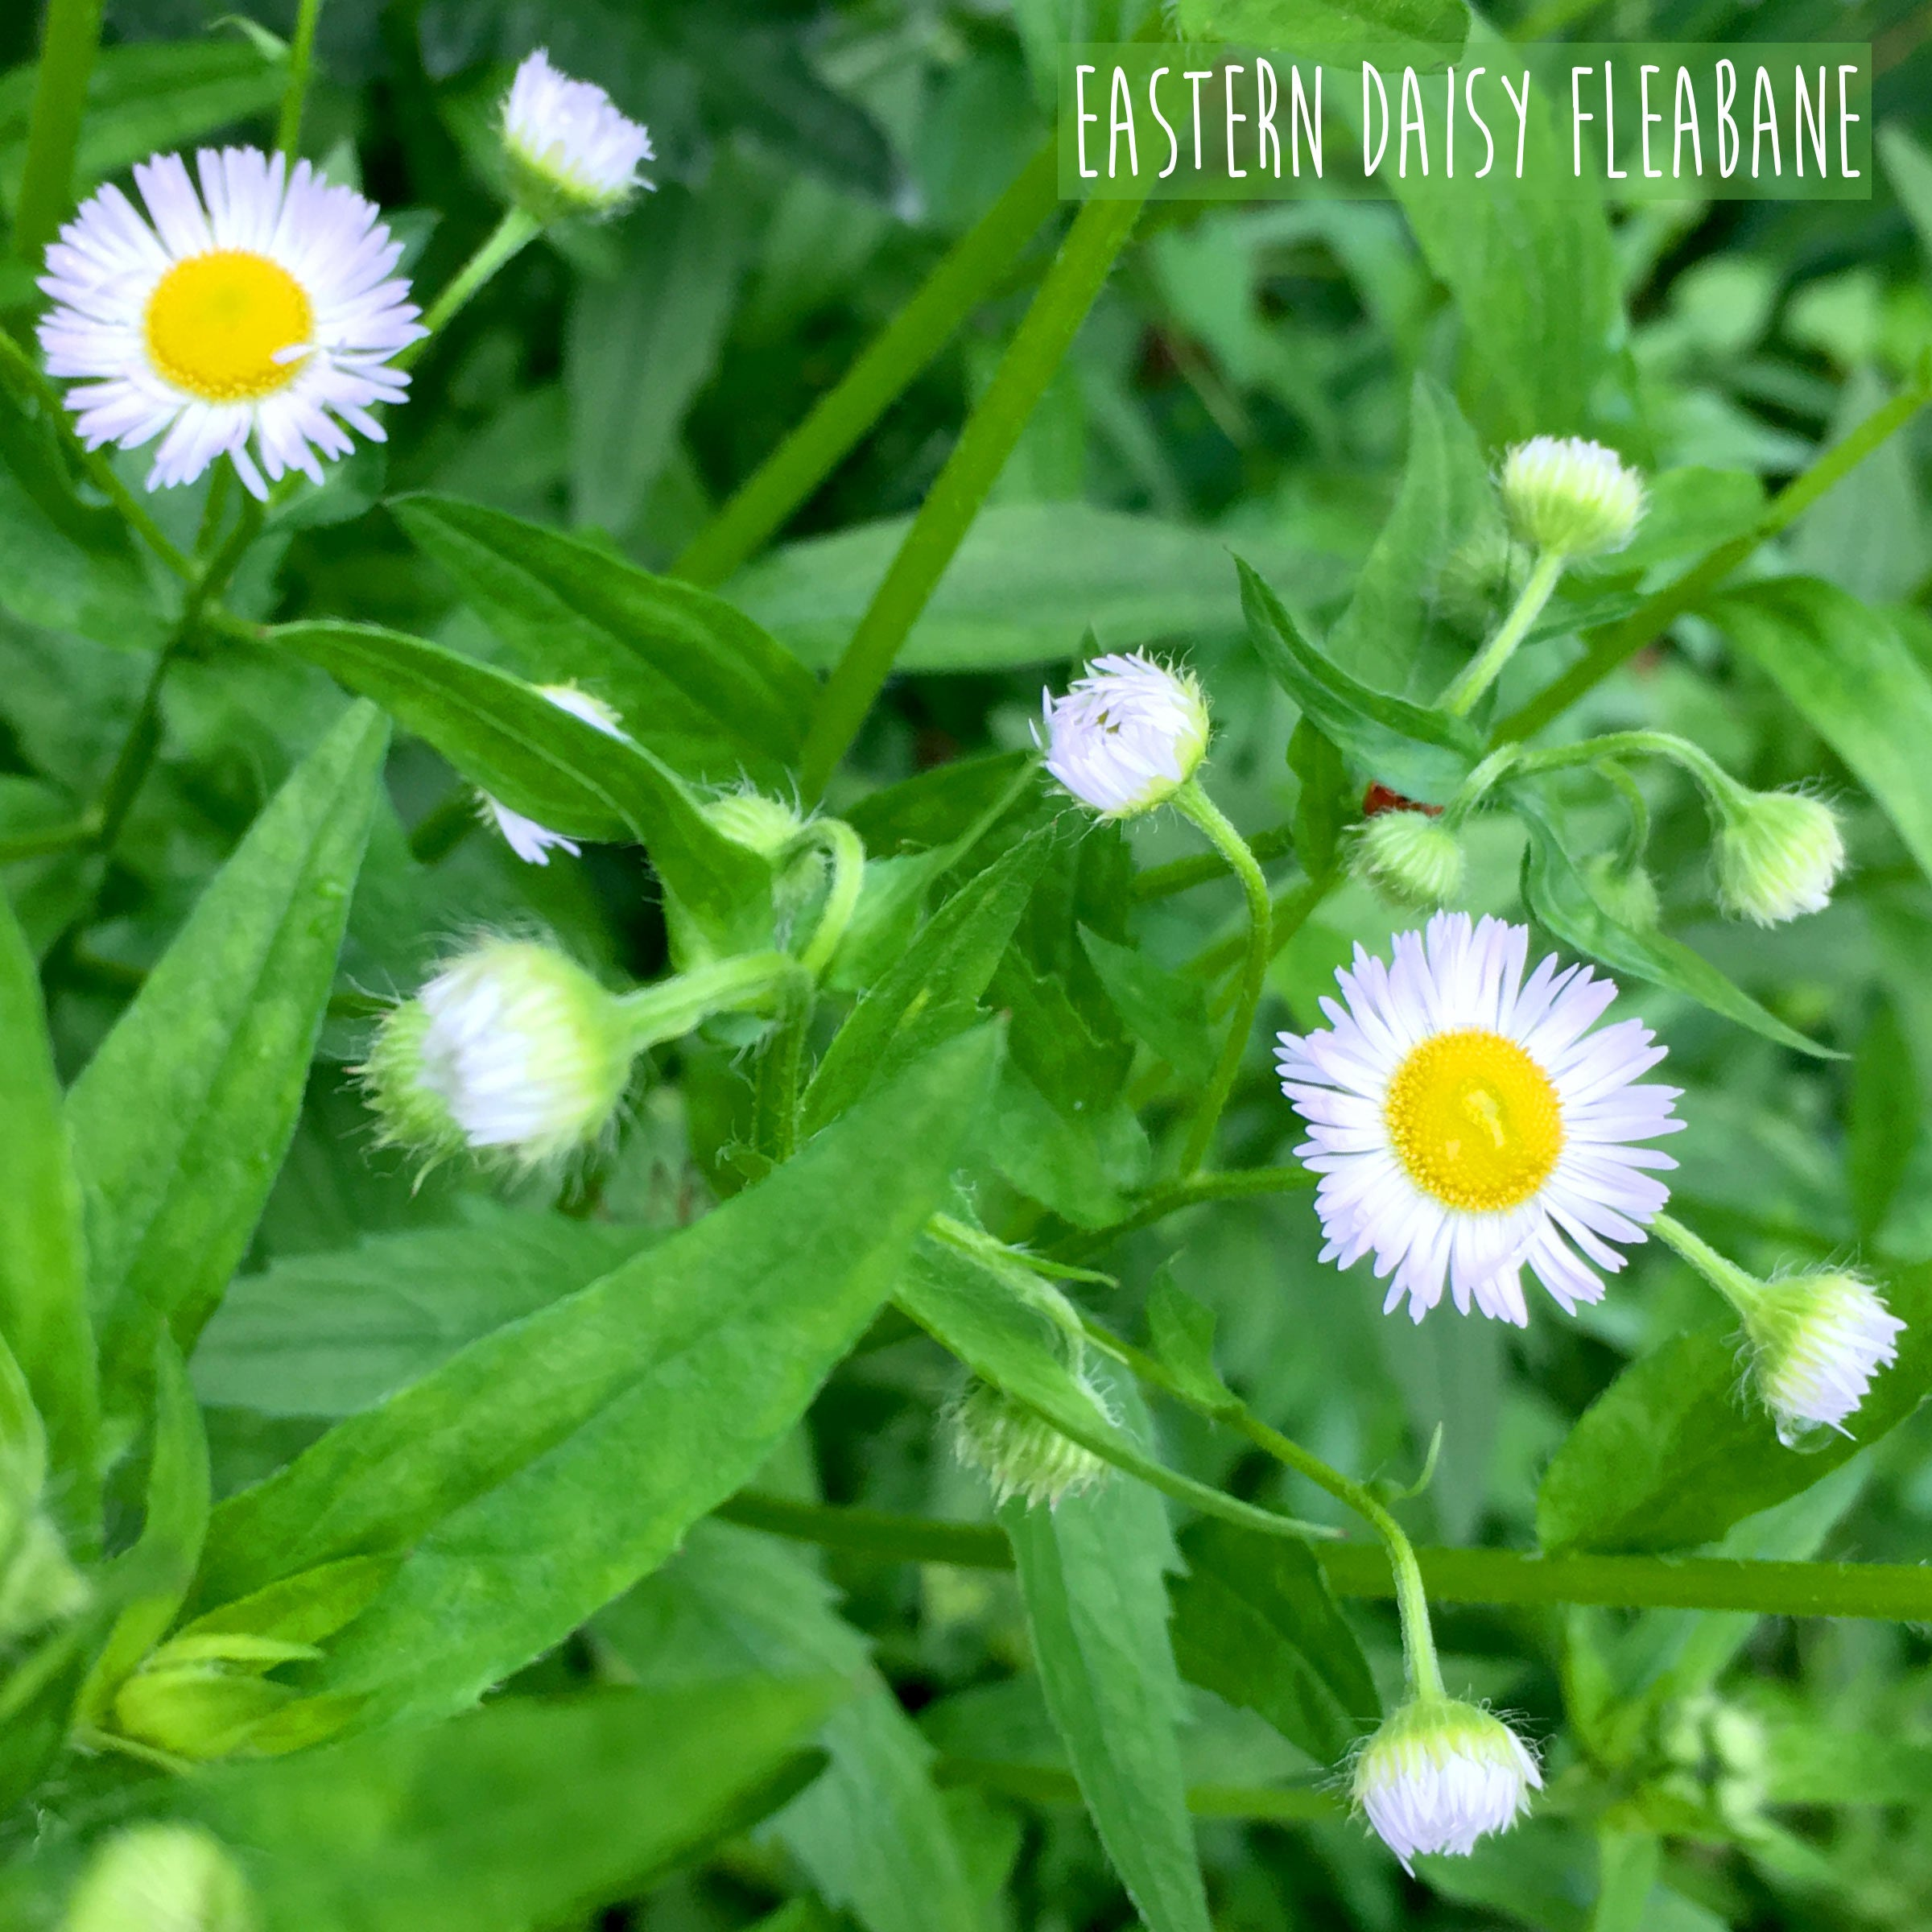 Does Your Garden Grow Wild - The Eastern Daisy Fleabane